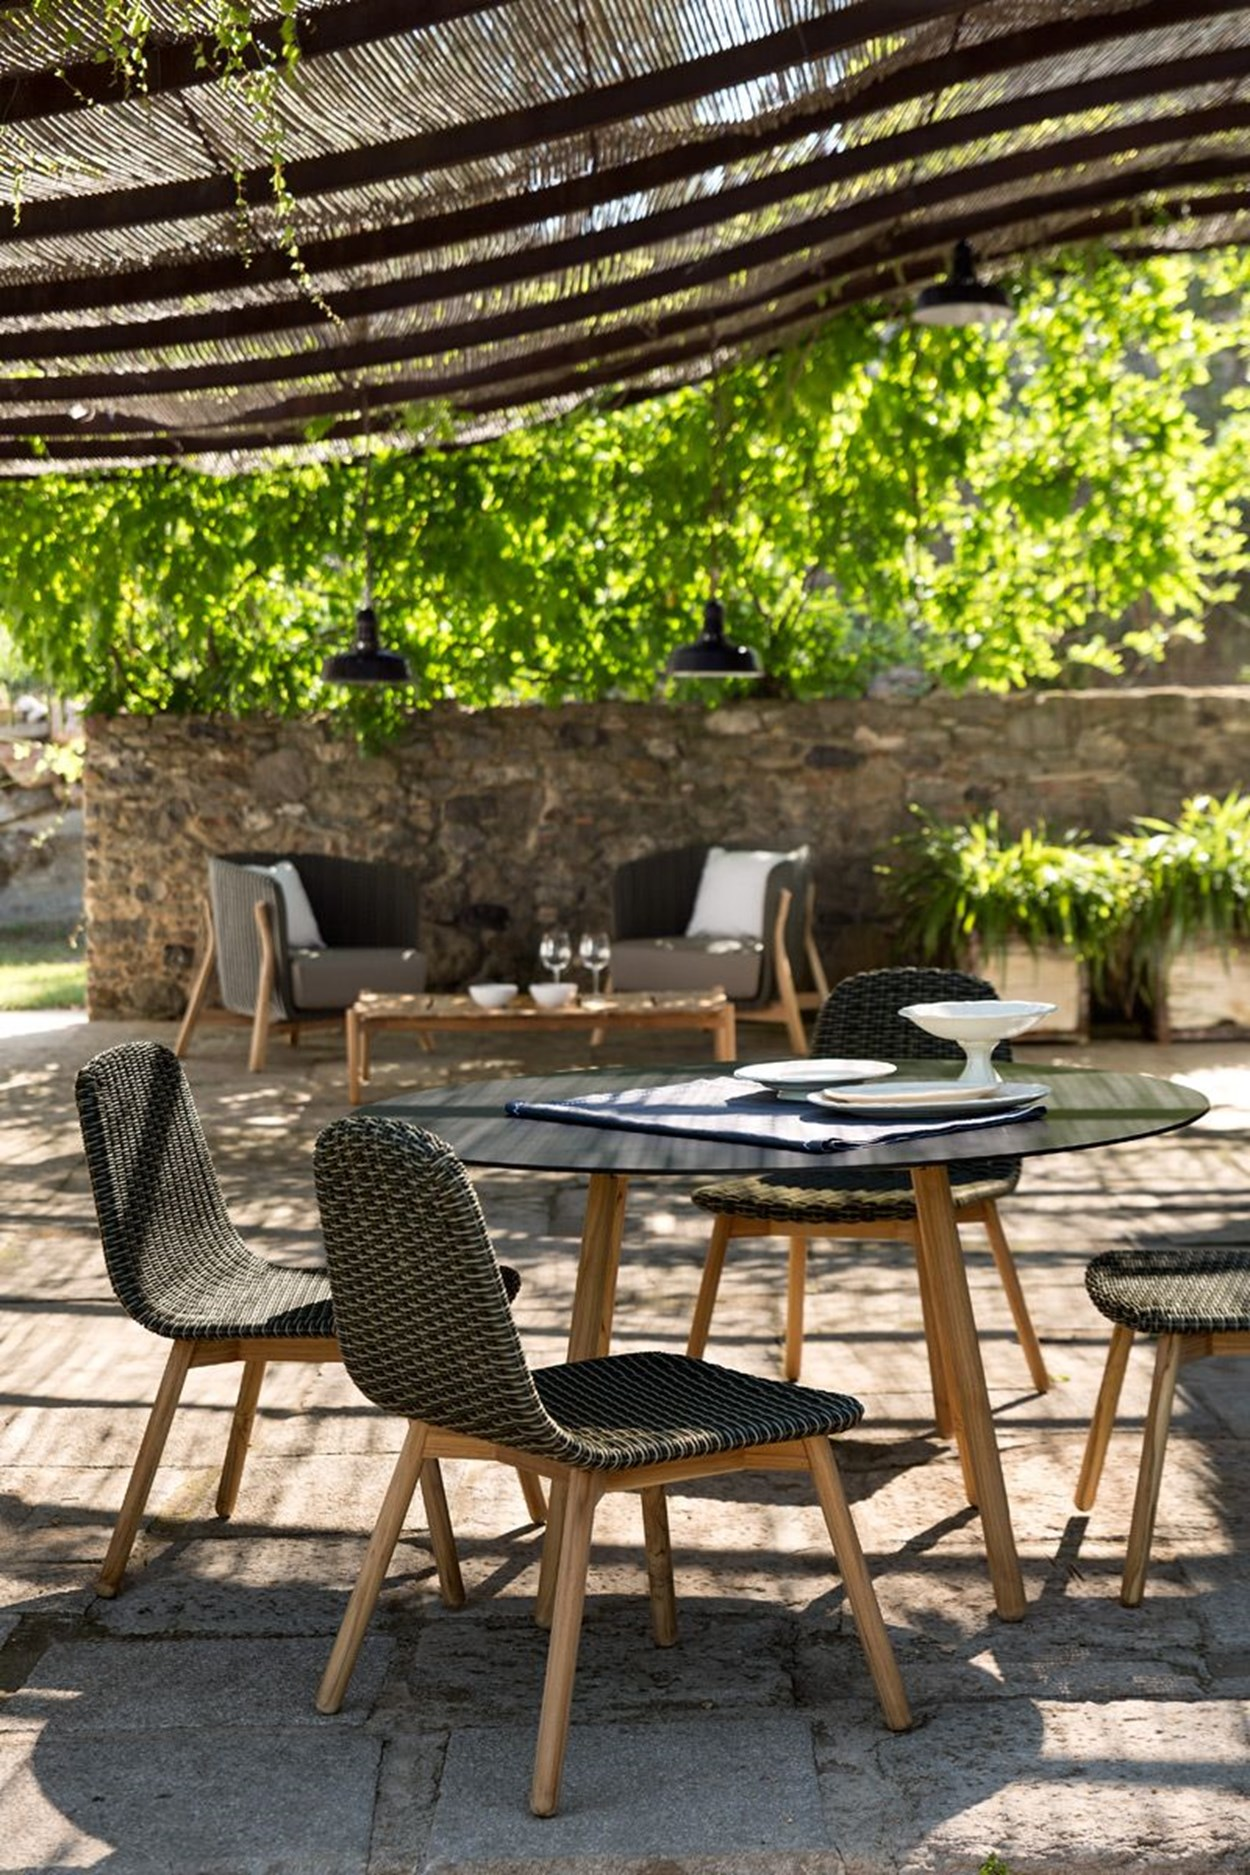 Round outdoor dining set furniture from spain for Outdoor furniture spain